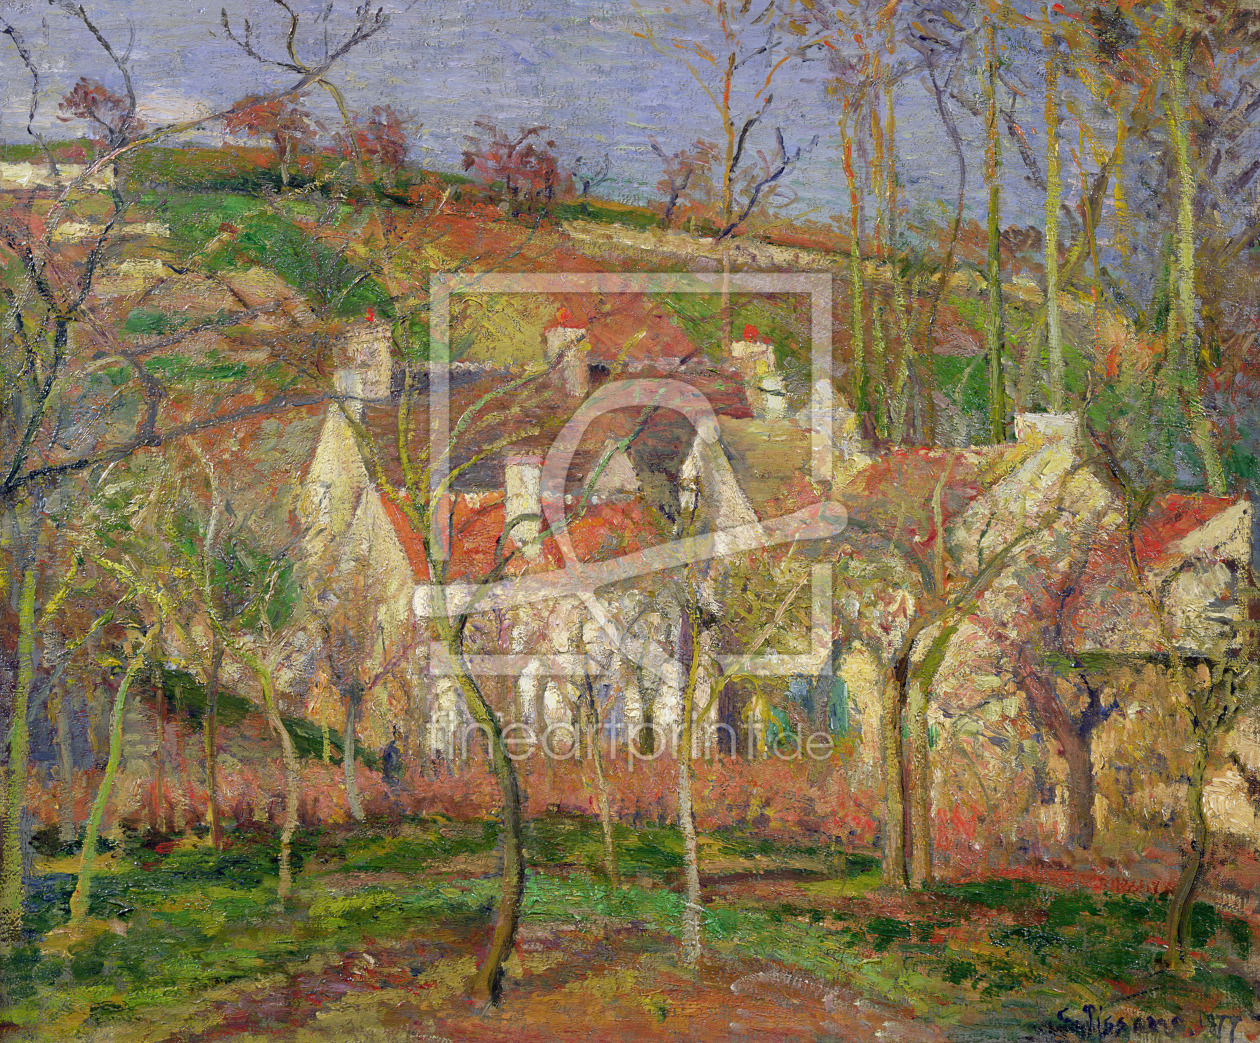 Bild-Nr.: 31000981 The Red Roofs, or Corner of a Village, Winter, 1877 erstellt von Pissarro, Camille